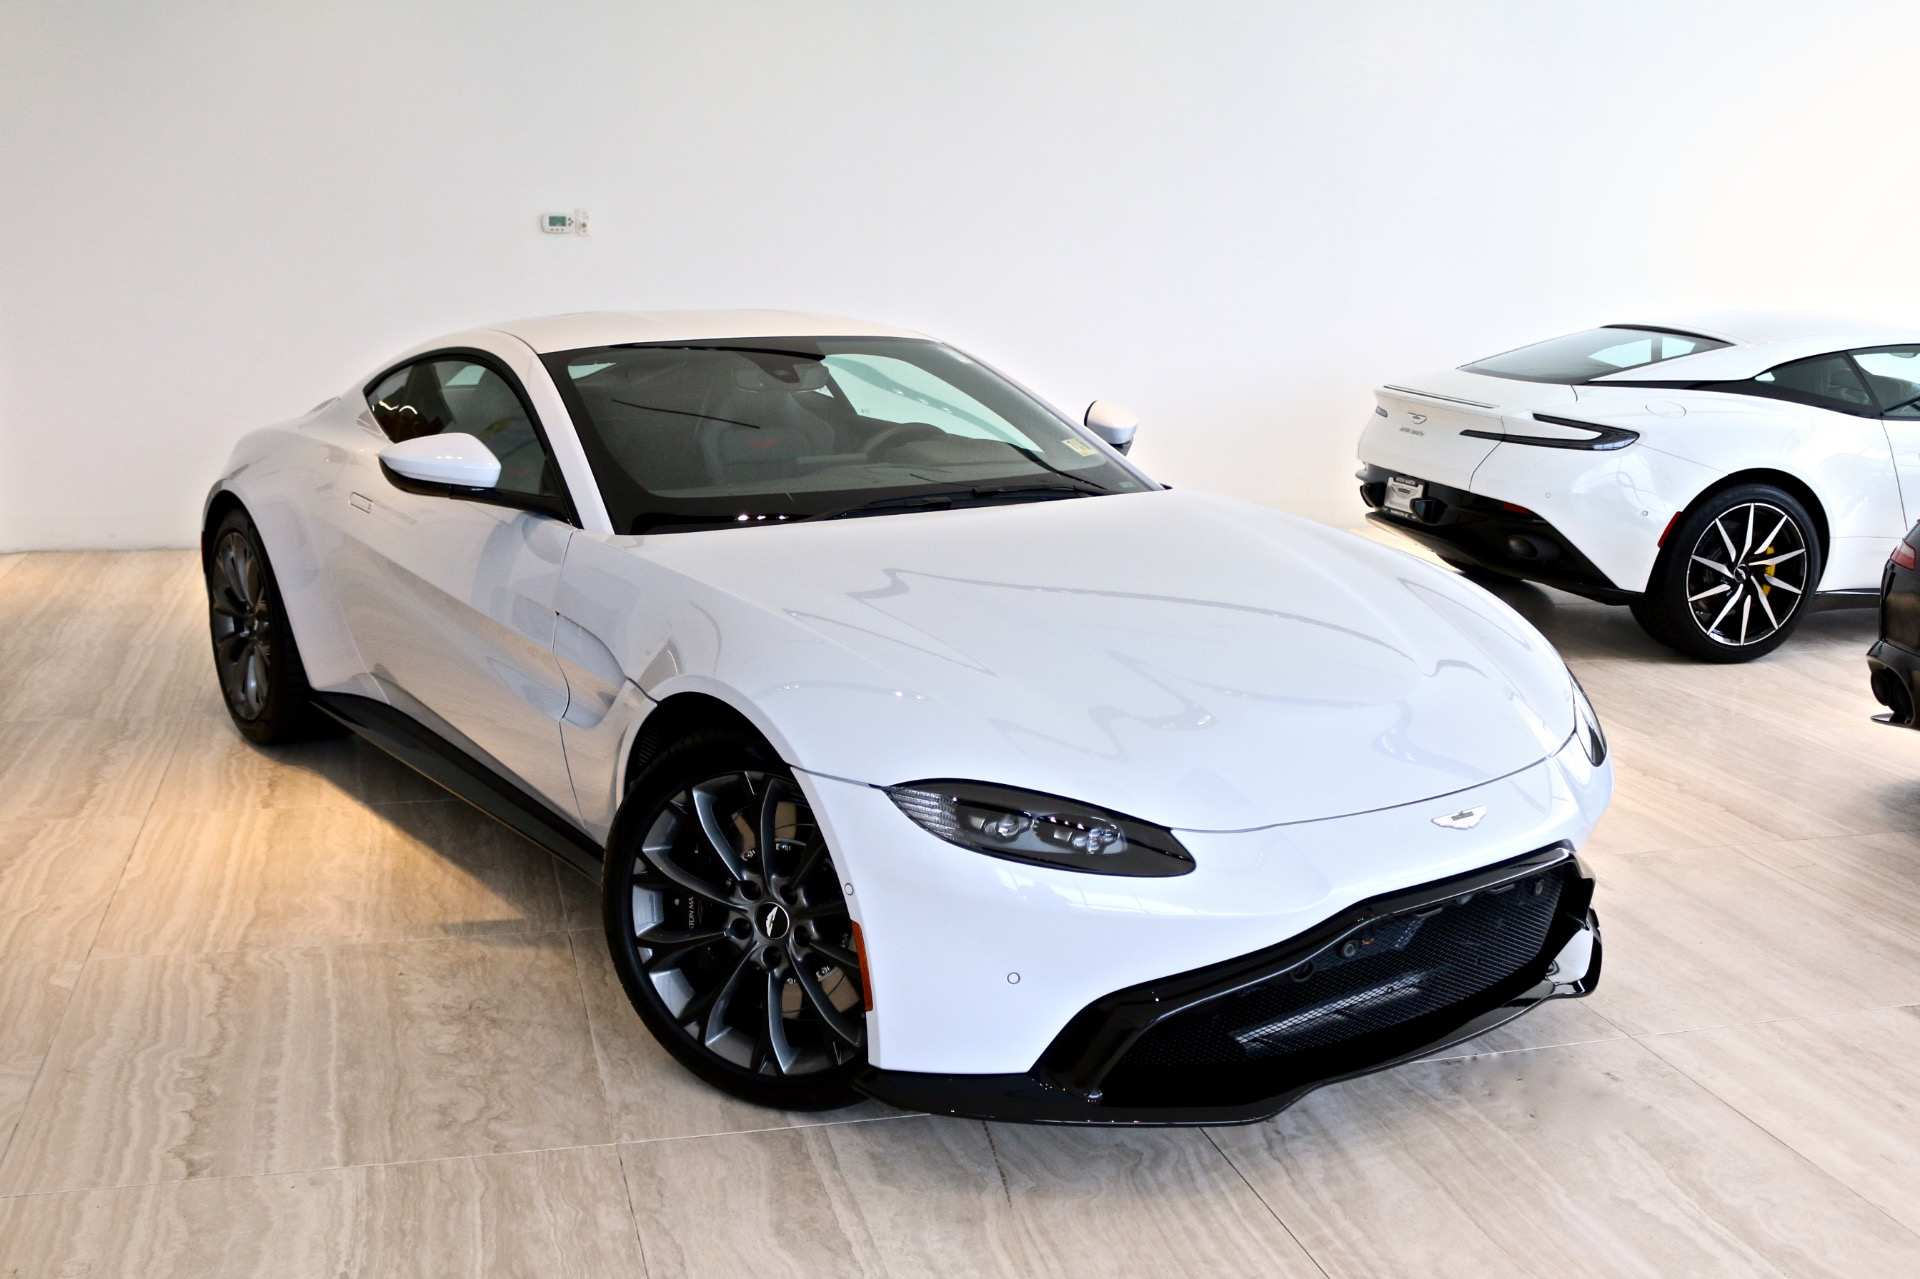 34 New 2019 Aston Martin Vantage For Sale Specs by 2019 Aston Martin Vantage For Sale